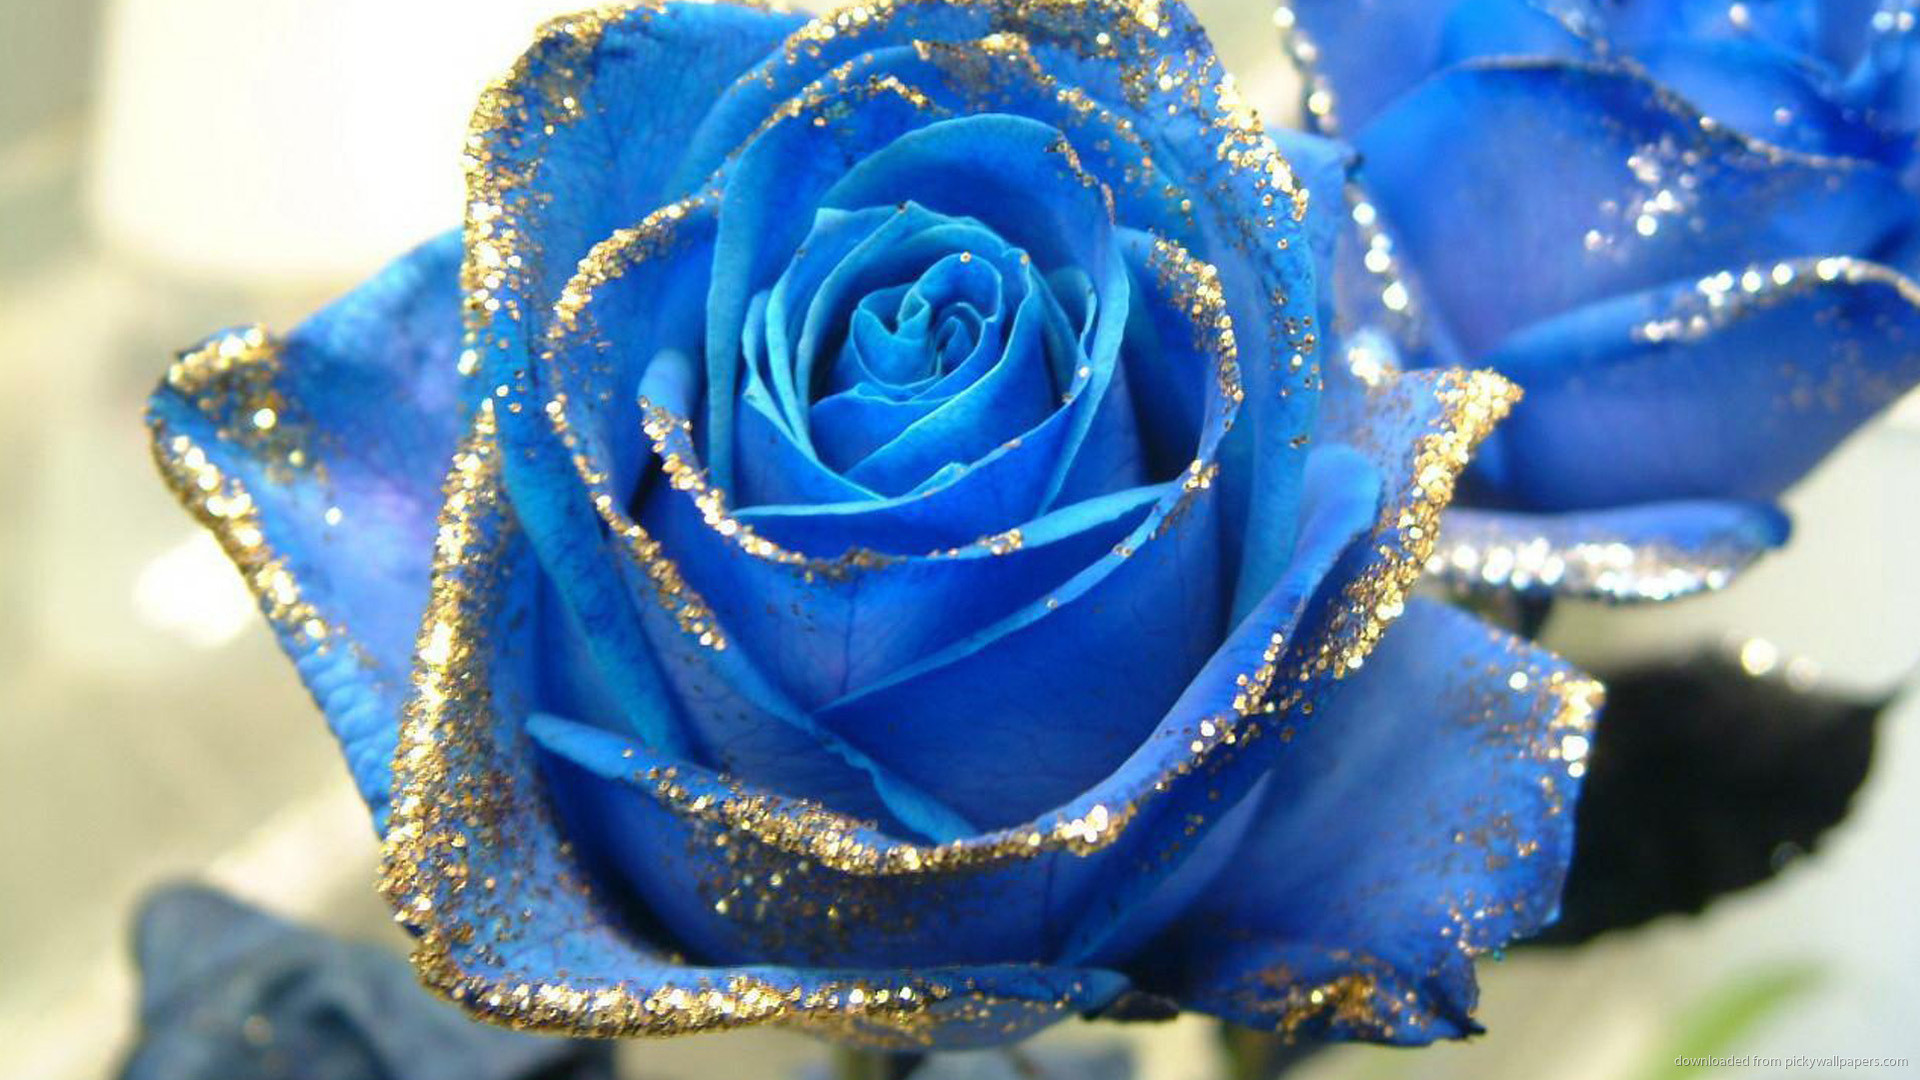 1920x1080 Blue Rose With Gold Glitter Wallpaper picture